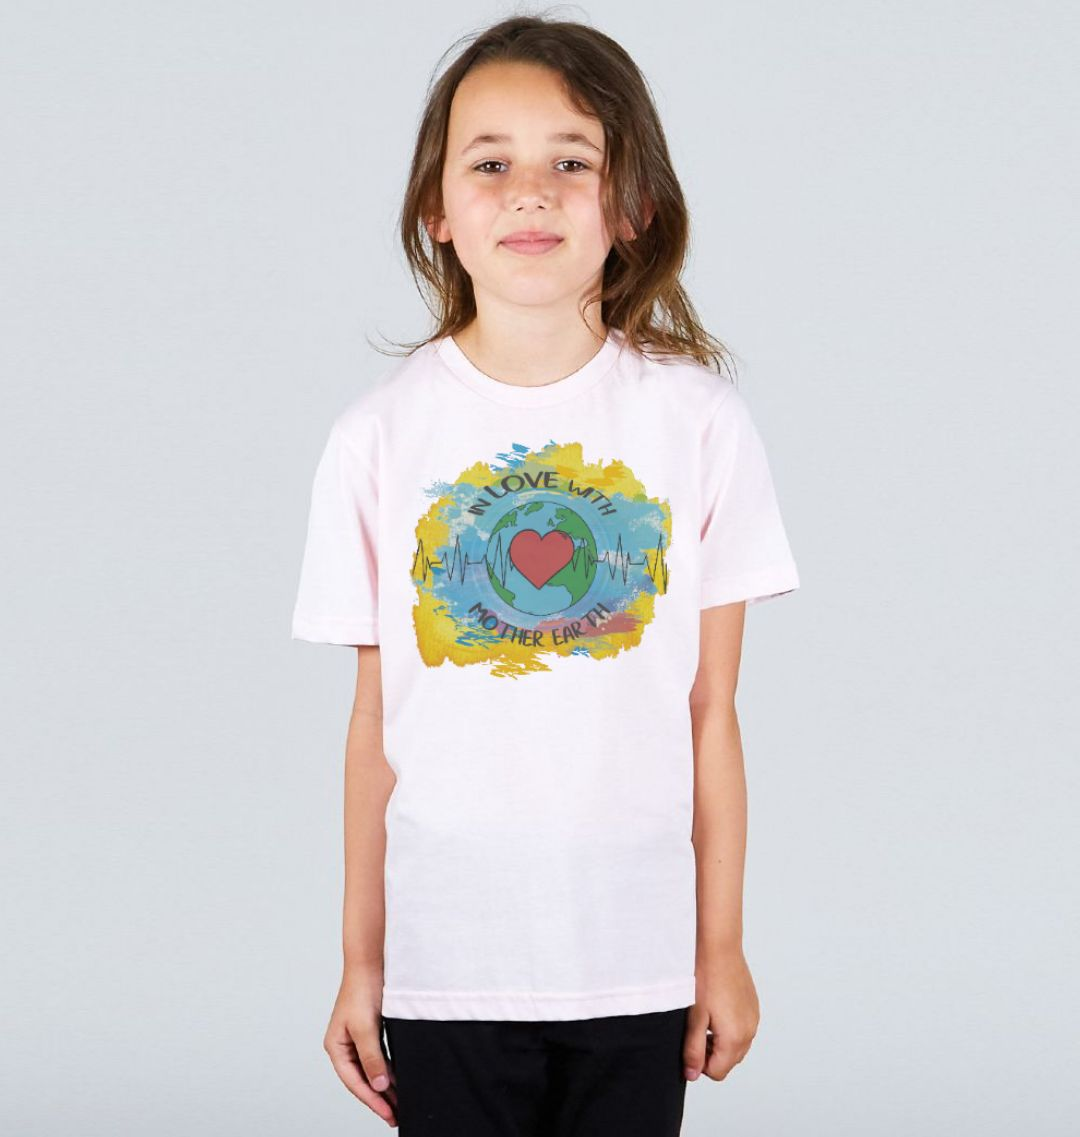 Children's Climate T Shirt 'In Love With Mother Earth' Soft Organic Cotton pink